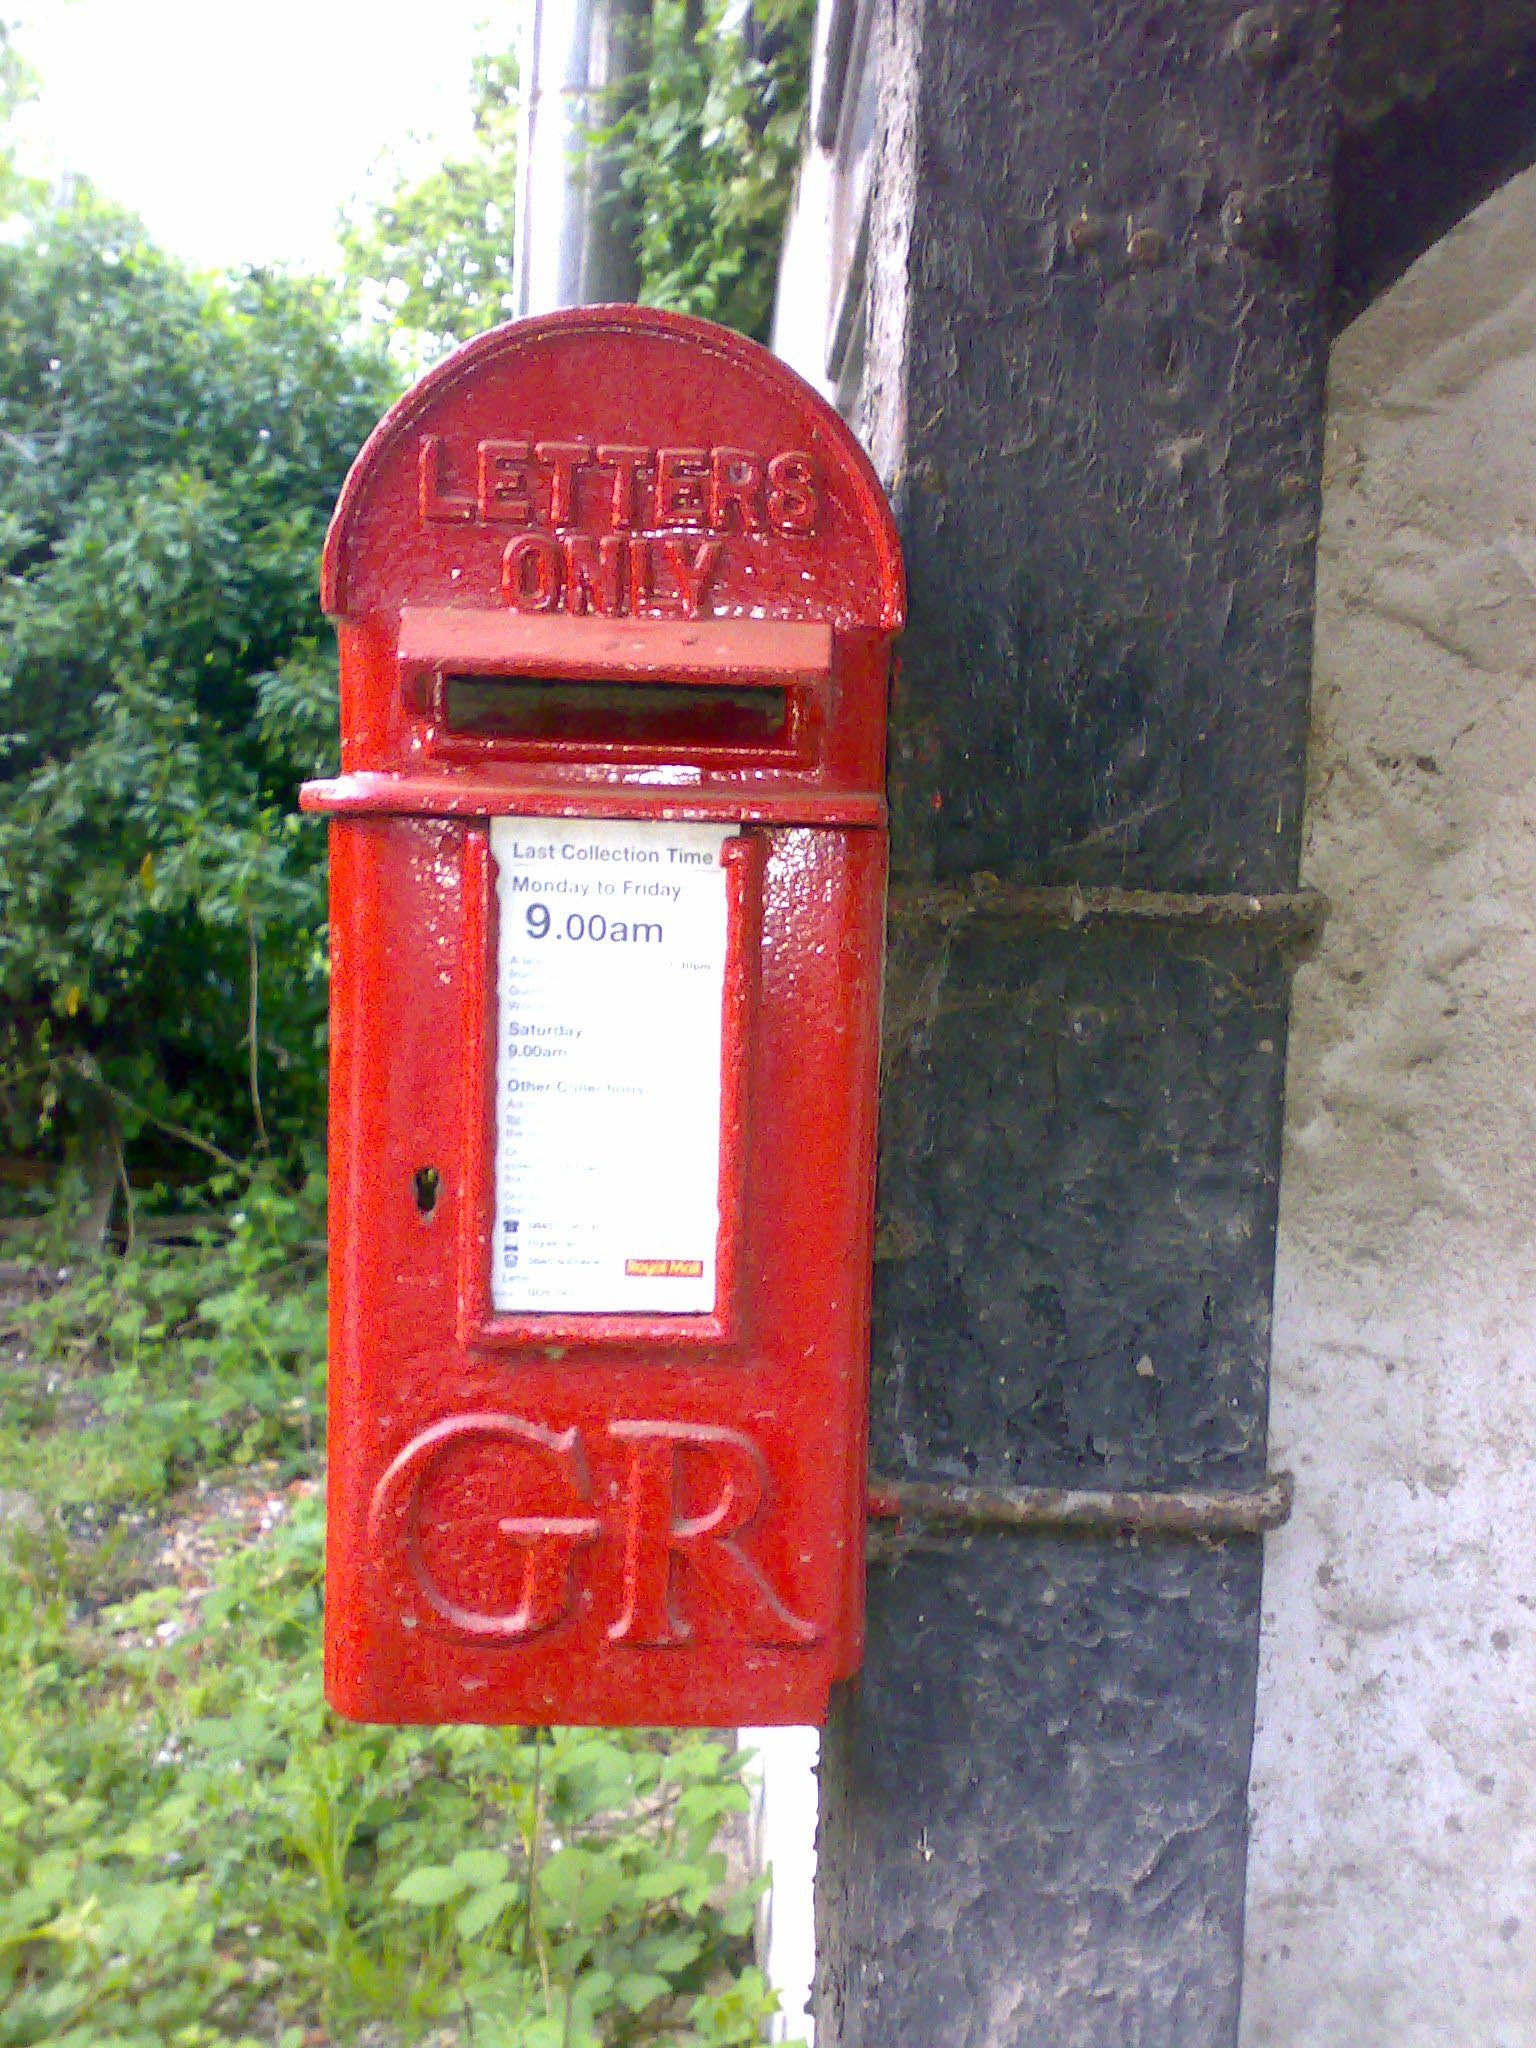 GR lamp box, 1920s, Surrey. Robert Cole